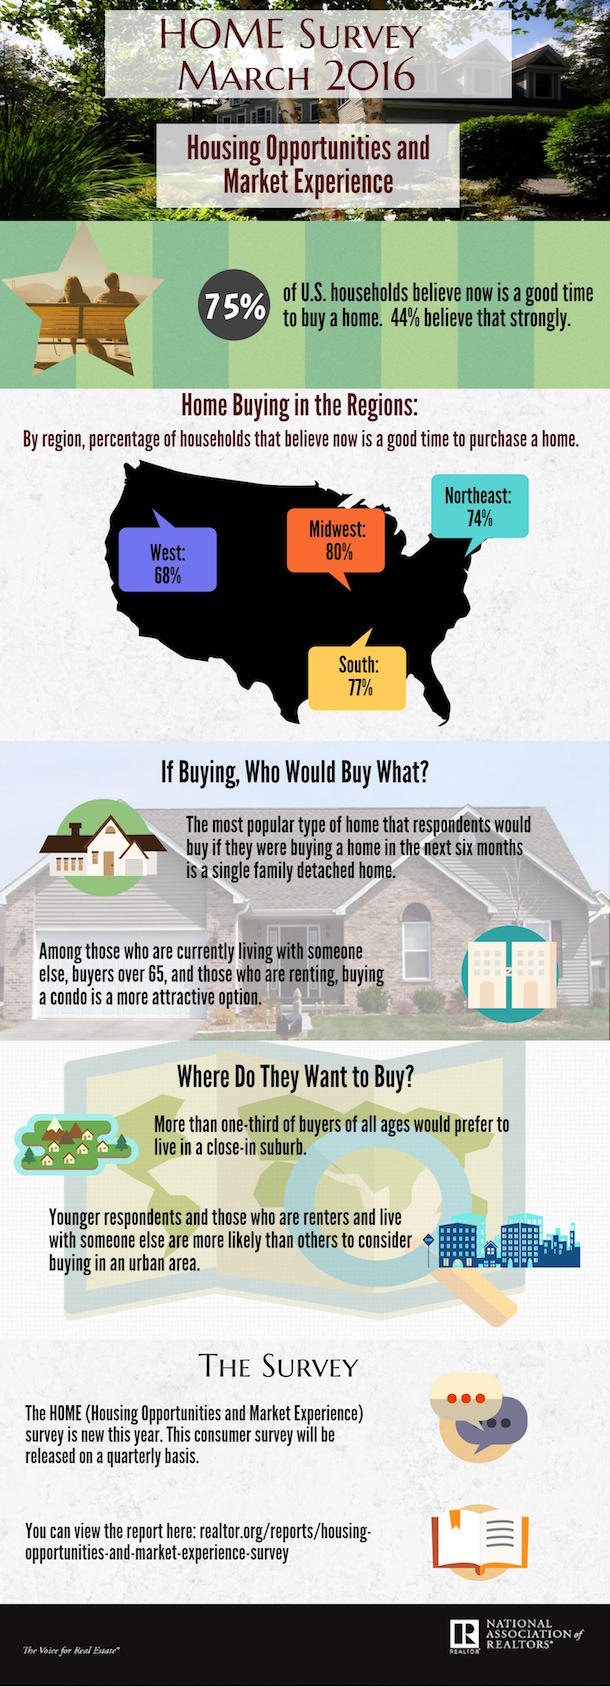 NAR HOME Survey Infographic - March 2016